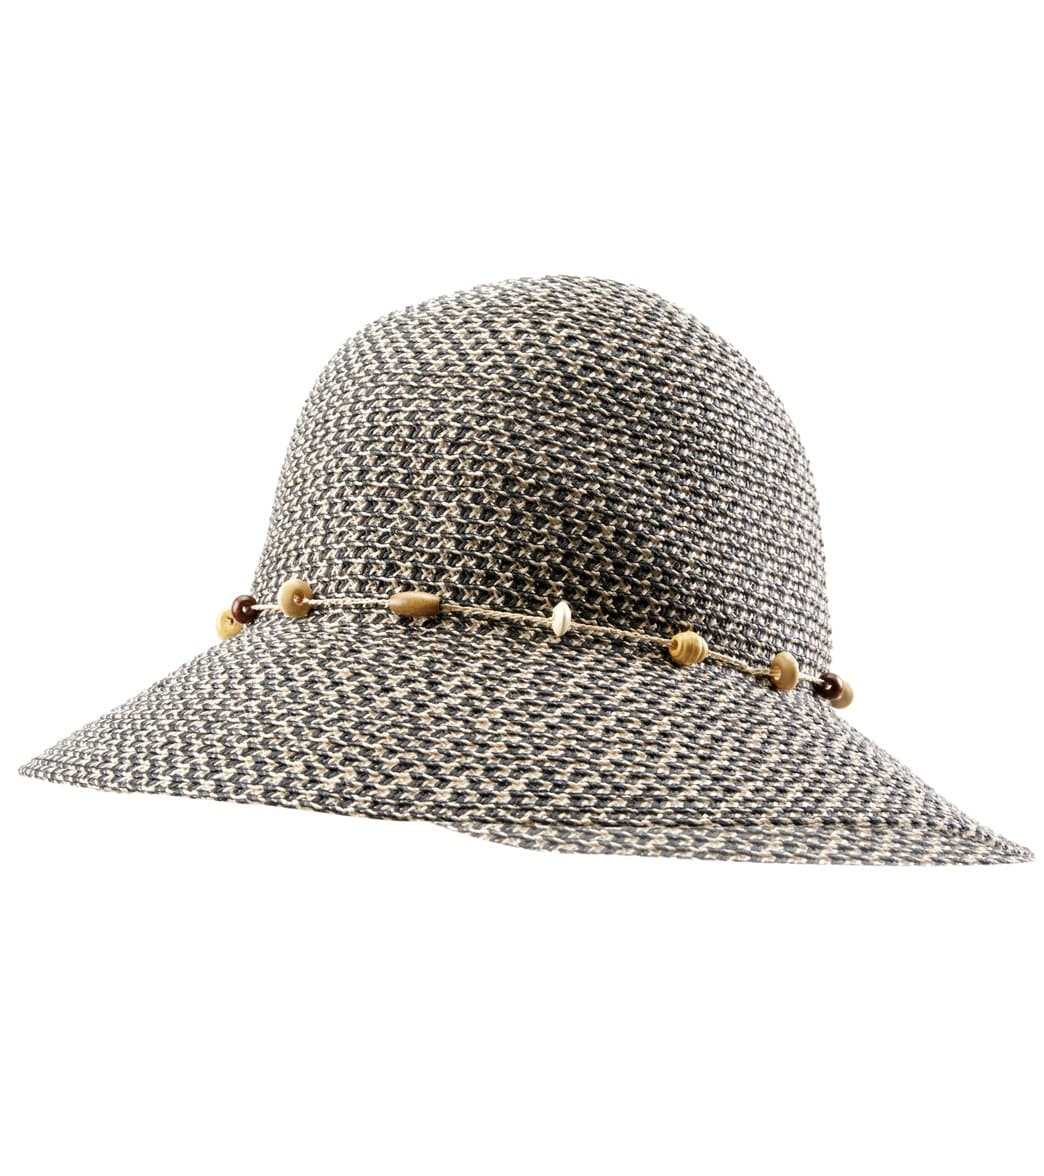 ccad13899aafa Wallaroo Women s Naomi Sun Hat at SwimOutlet.com